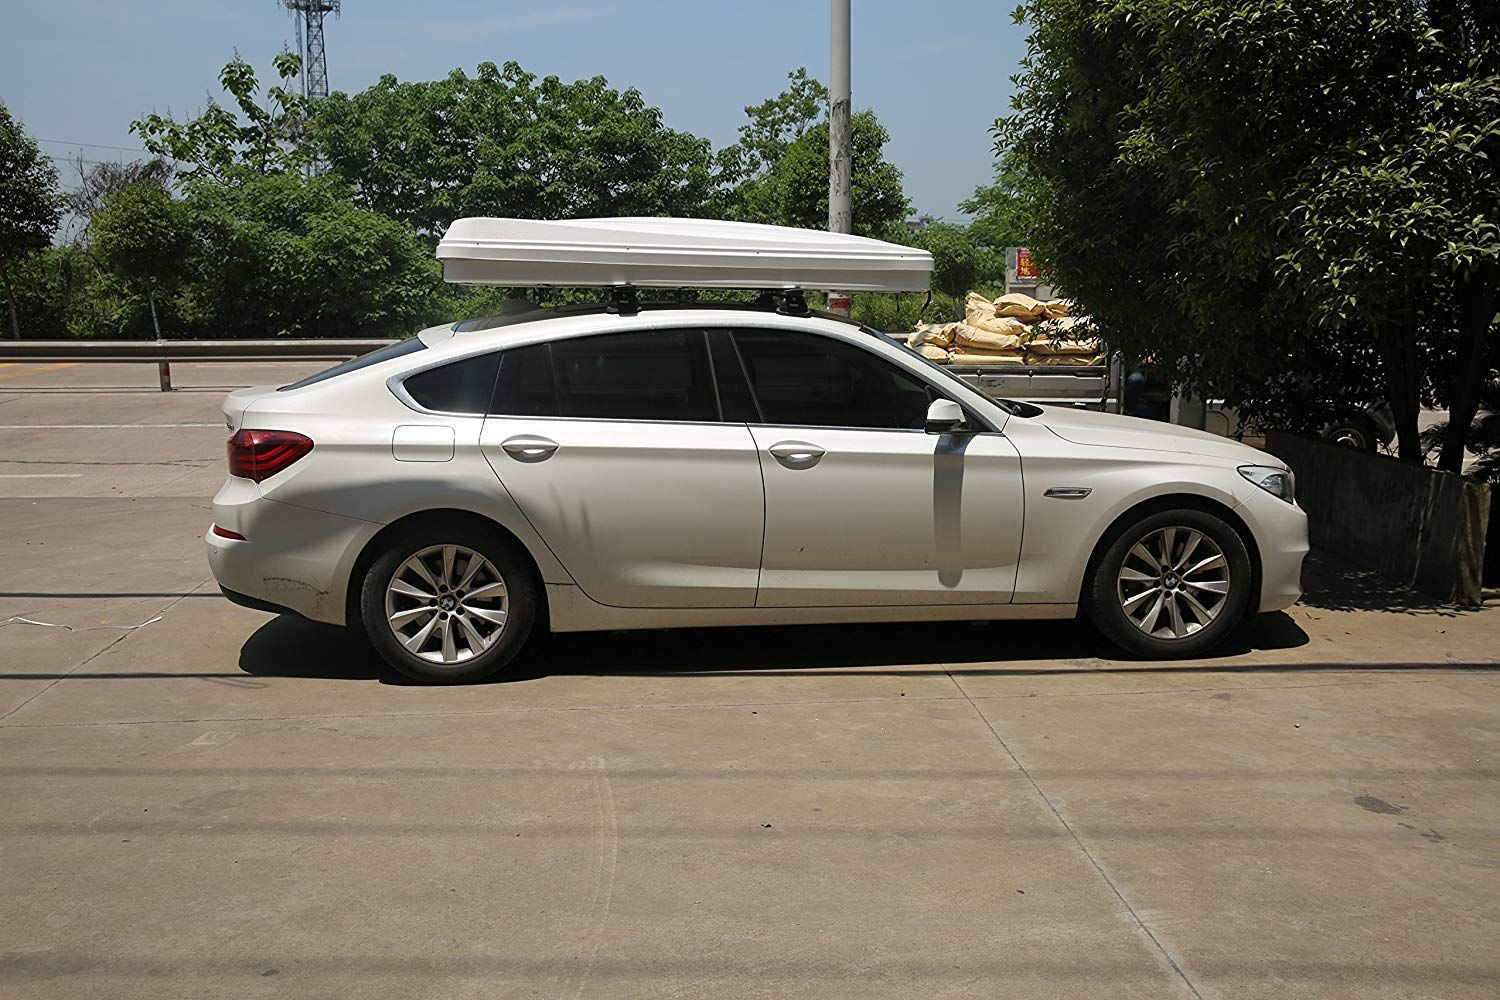 DANCHEL OUTDOOR Hard Shell Rooftop Tent for Cars Roof